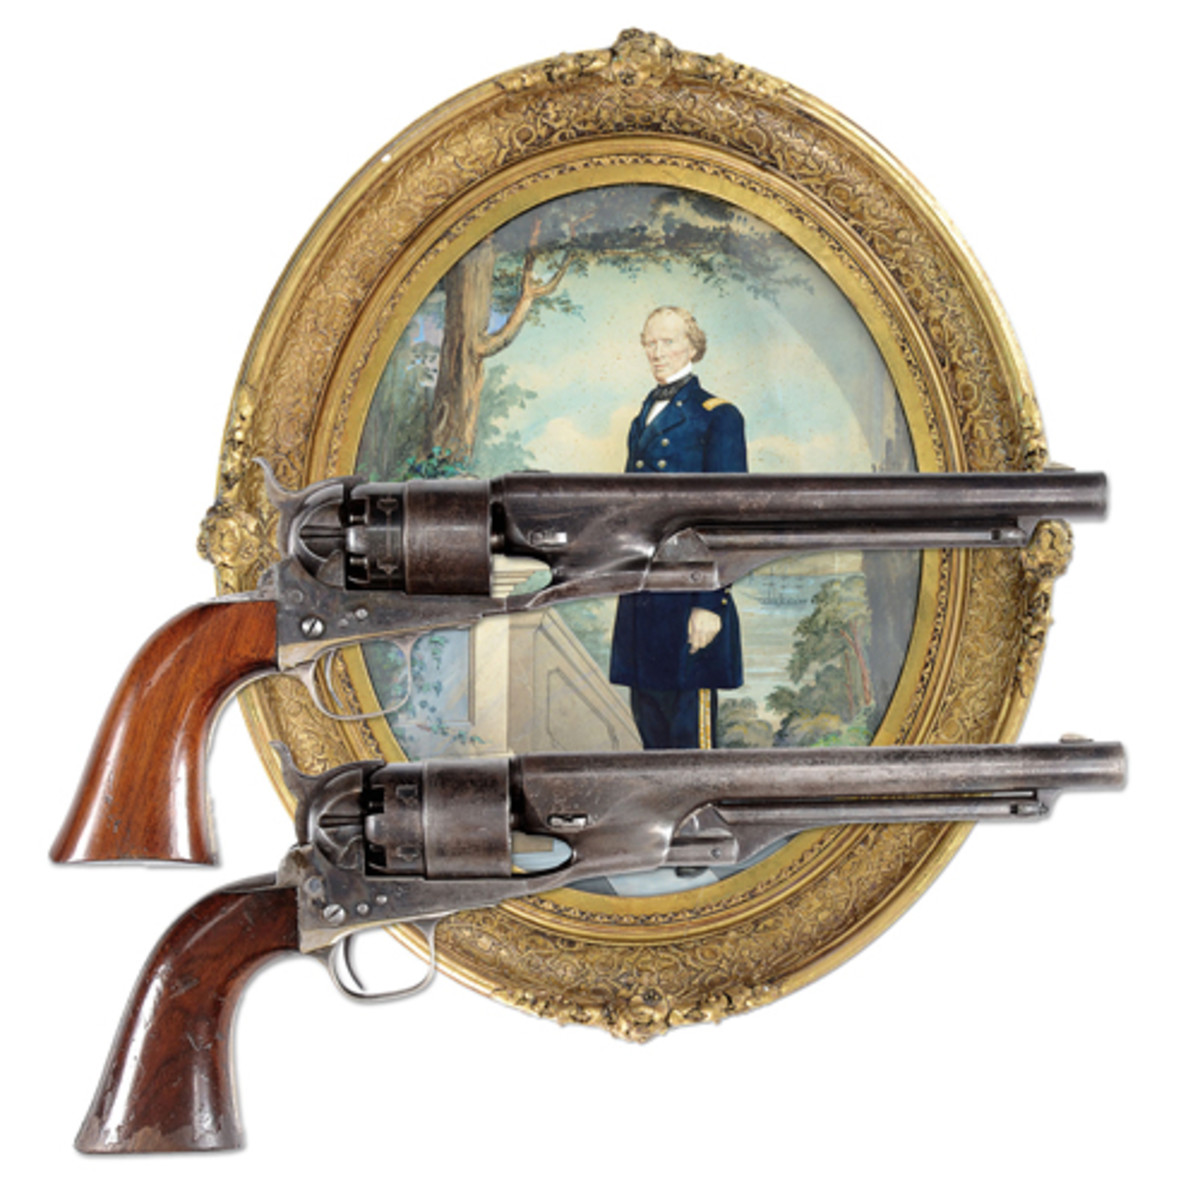 Historic and Iconic Extremely Fine Cased Pair of Col. Colt Presentation Model 1860 Army Percussion Revolvers to Col. James Cameron who died heroically at the Battle of First Bull Run. James was the brother of Simeon (Lincoln's Sec. of War); estimated at $100,000-150,000, sold for $132,250.